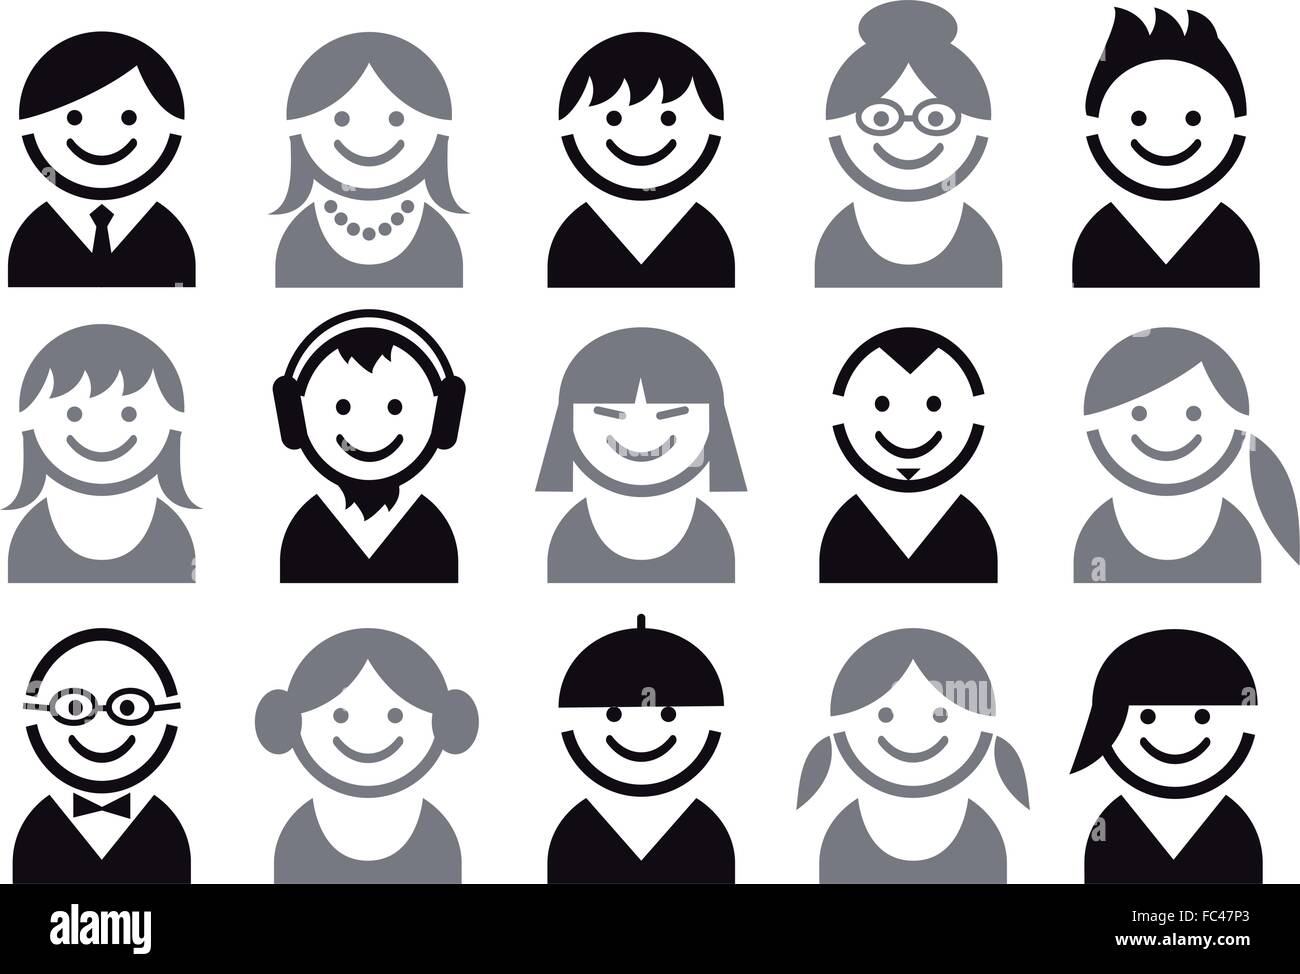 People icons, avatar, user, character design, vector set - Stock Image